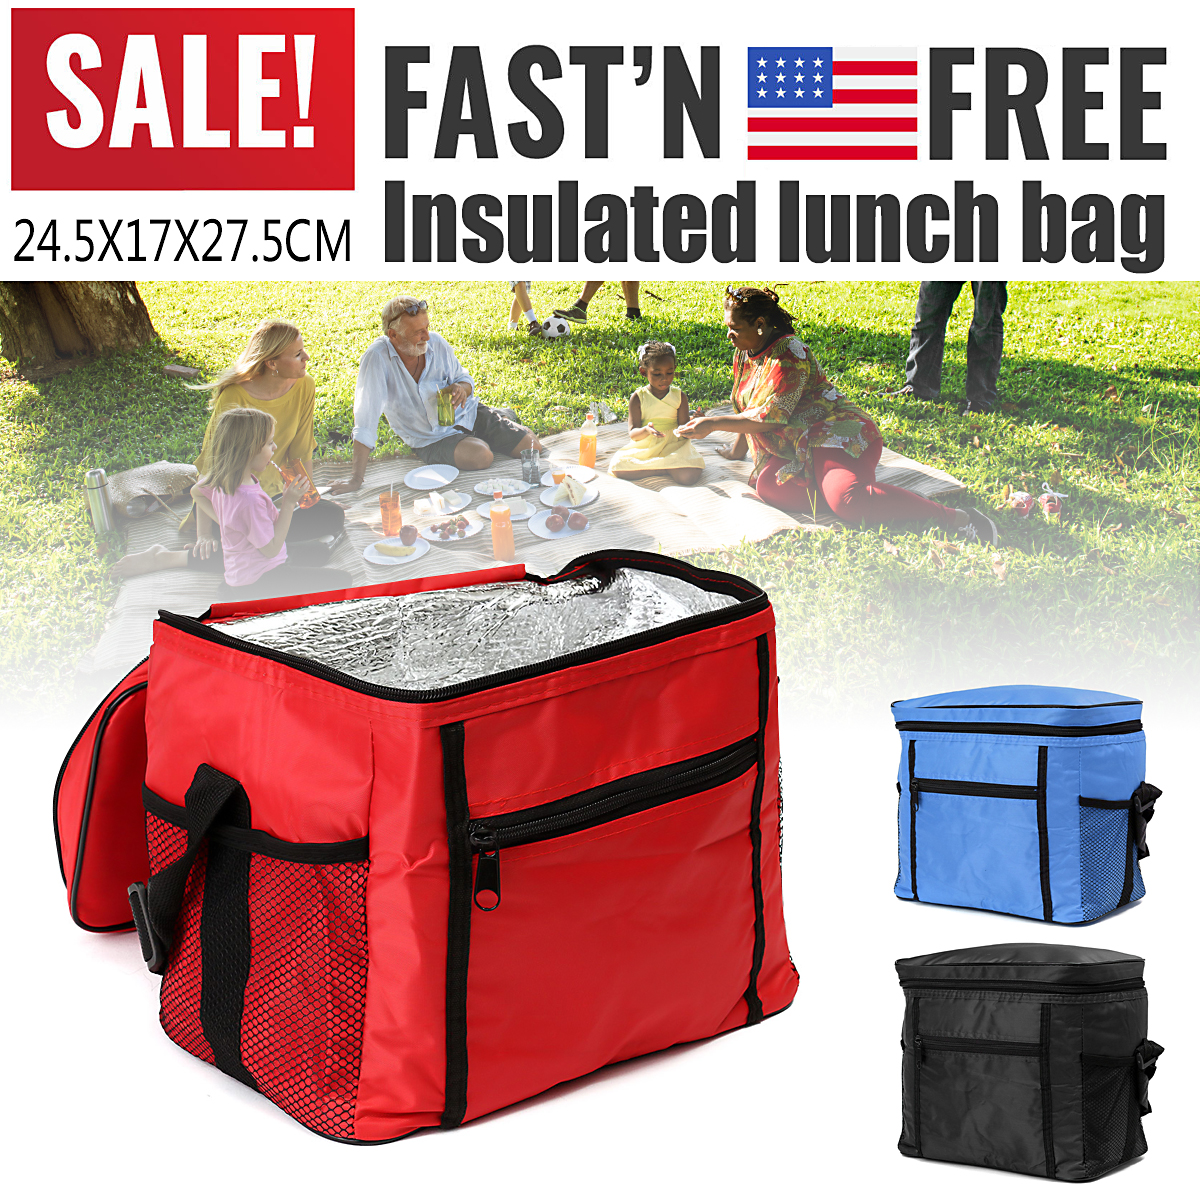 Hot sale!! Oxford Fabric Thermal Cooler Waterproof Insulated Portable Picnic Travel Lunch Ice Food Bag Family Camping Travel or Food Delivery and Takeaway Takeout Box 3 Colors